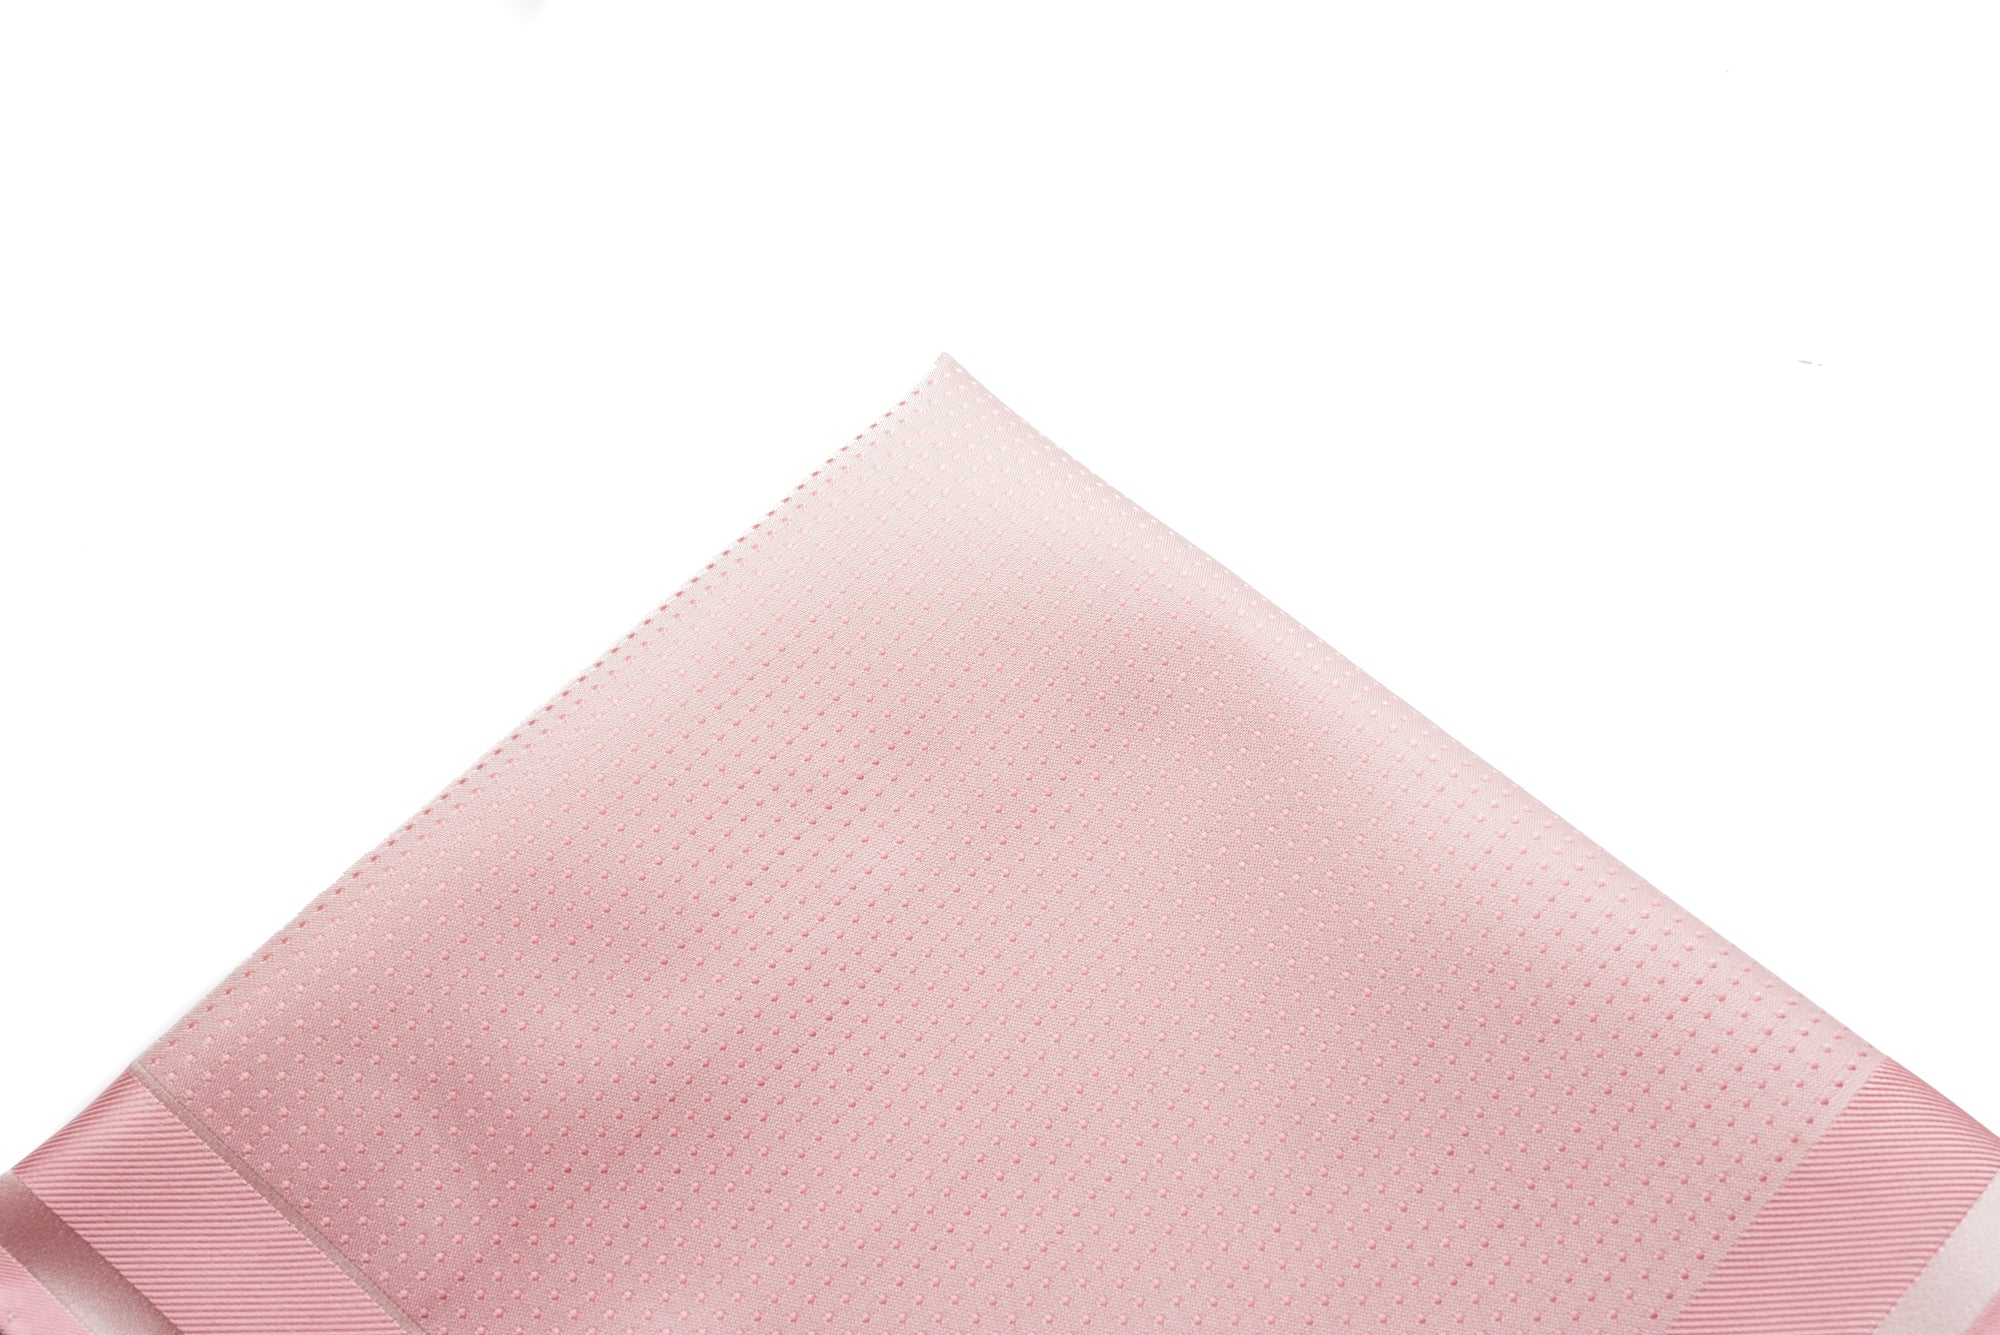 Pocket Square Pink - White Woven